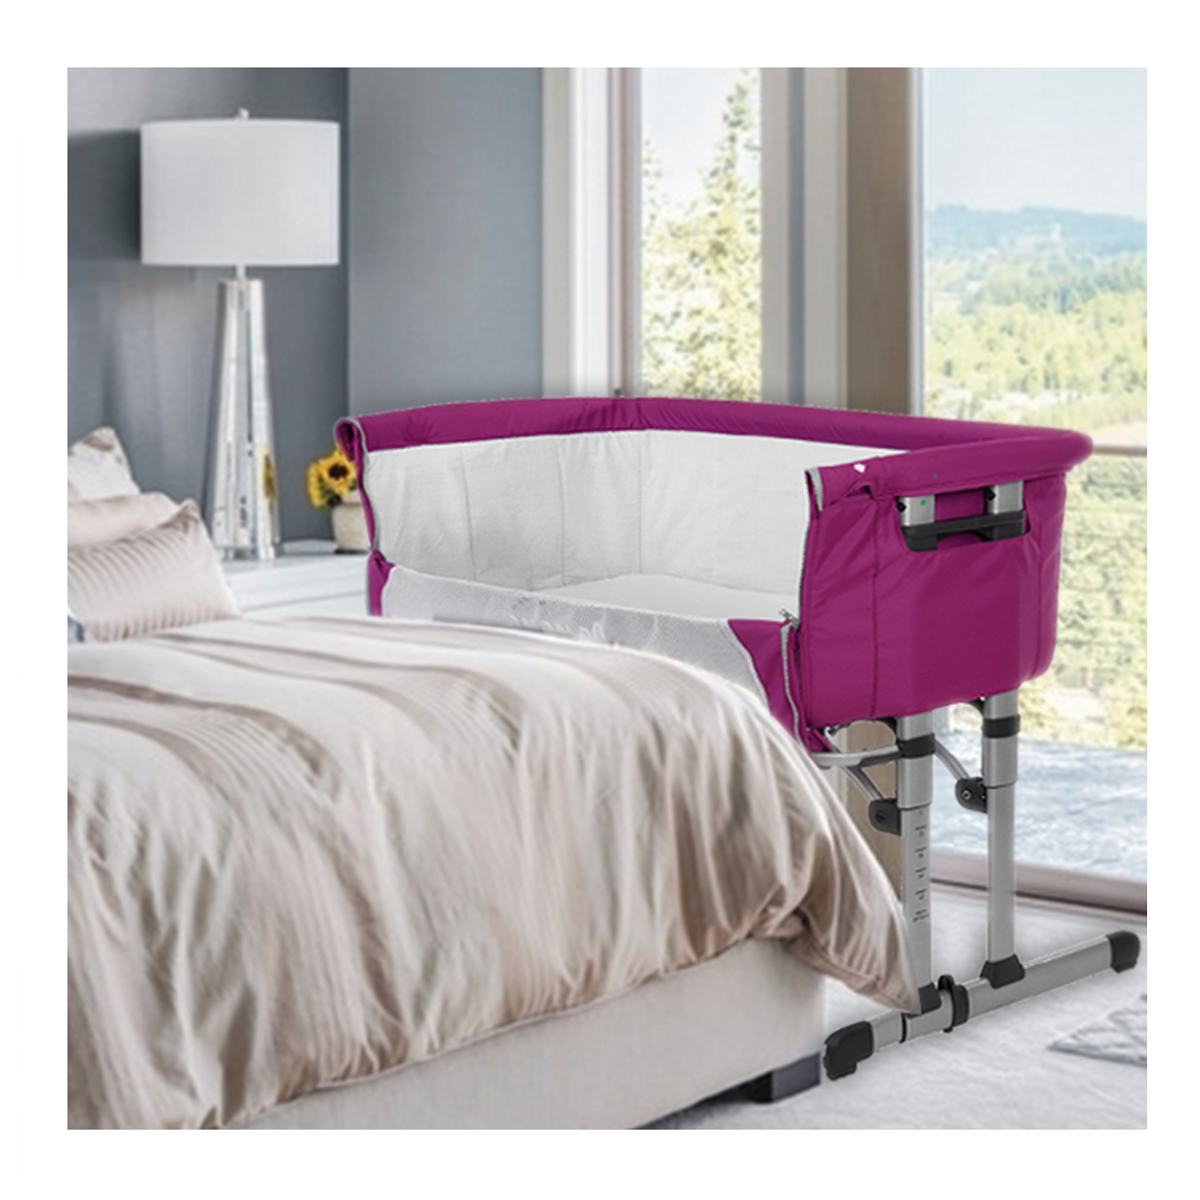 next crib arms vue cribs bedside reach bed co attaches to bassinet attached sleeper baby clear png best